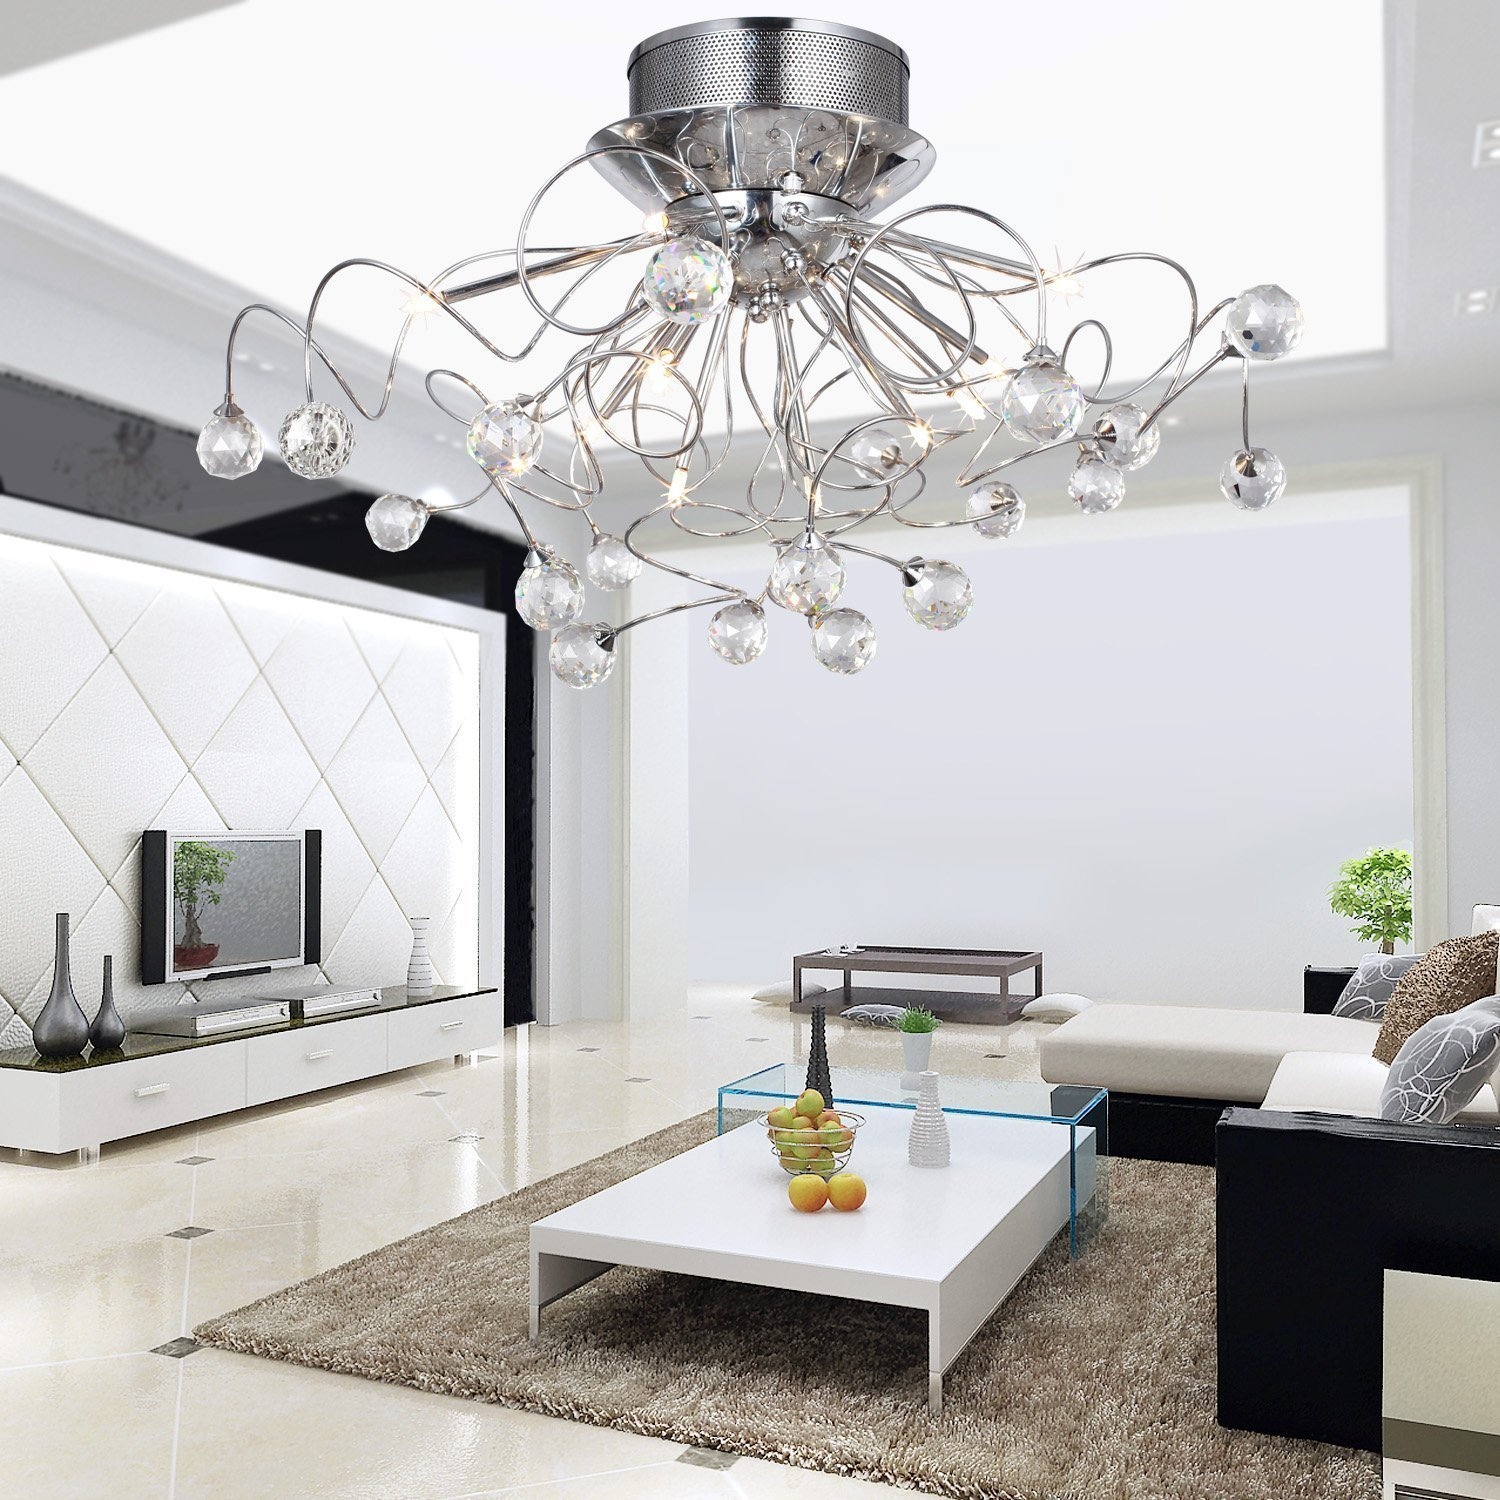 the-best-home-decorating-modern-bedroom-design-ideas-with-elegant-stainless-steel-canopy-chandeliers-including-gas-style-arm-and-comfortable-creamy-padded-mattress-near-alluring-white-sideboard-table